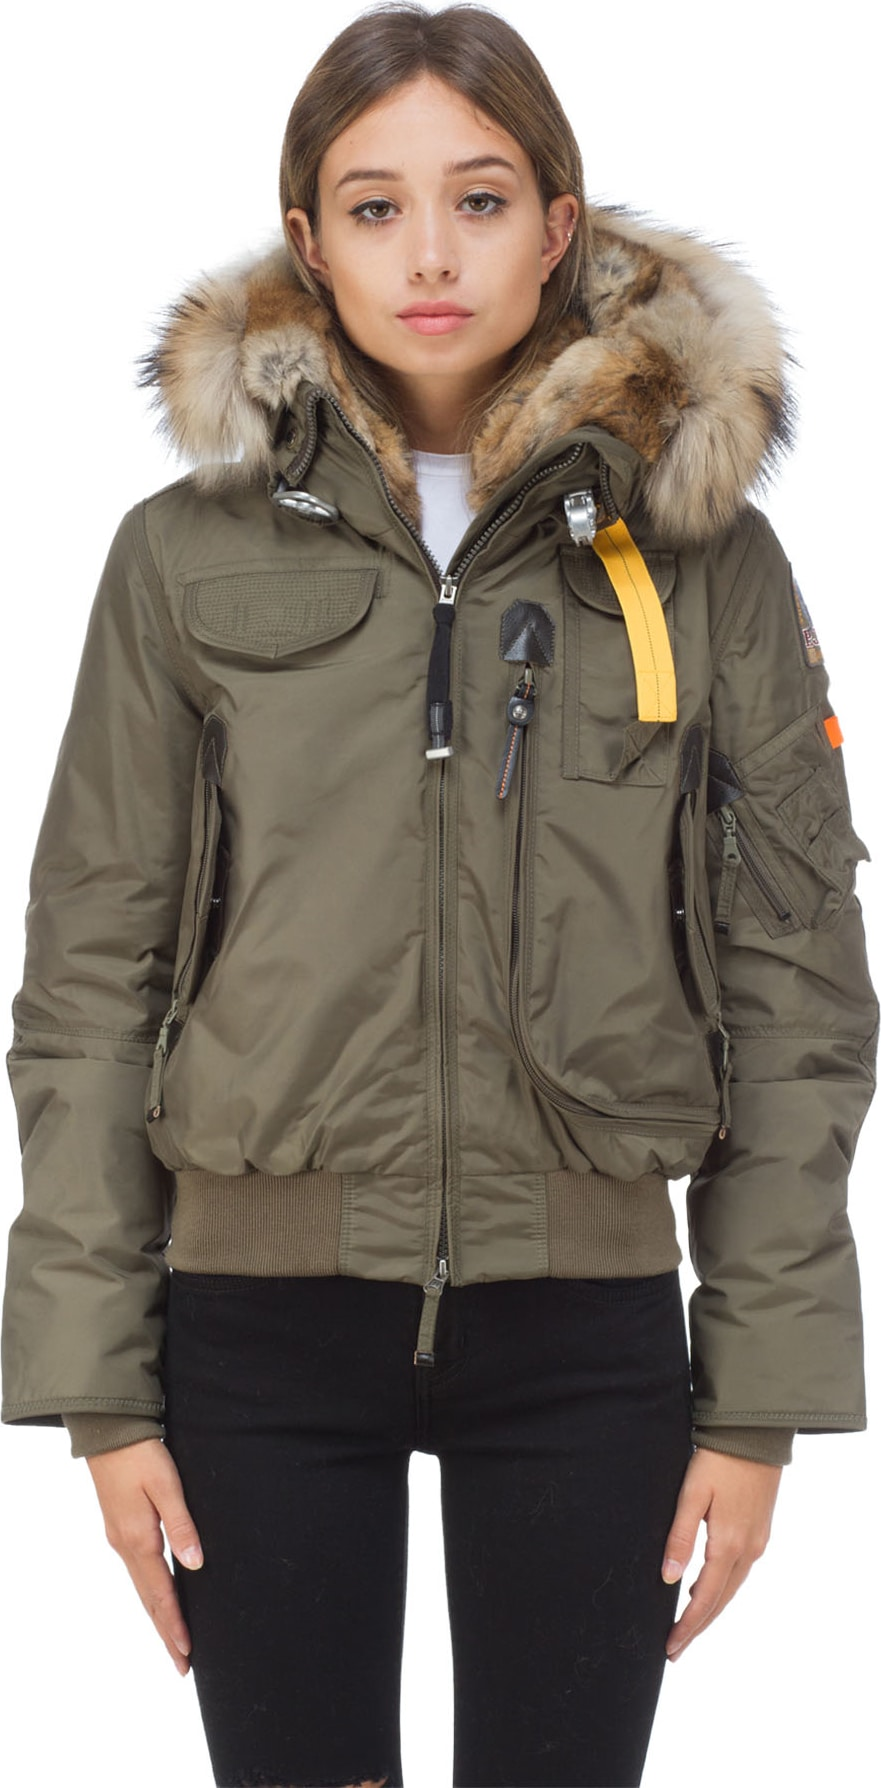 parajumpers women's gobi jacket